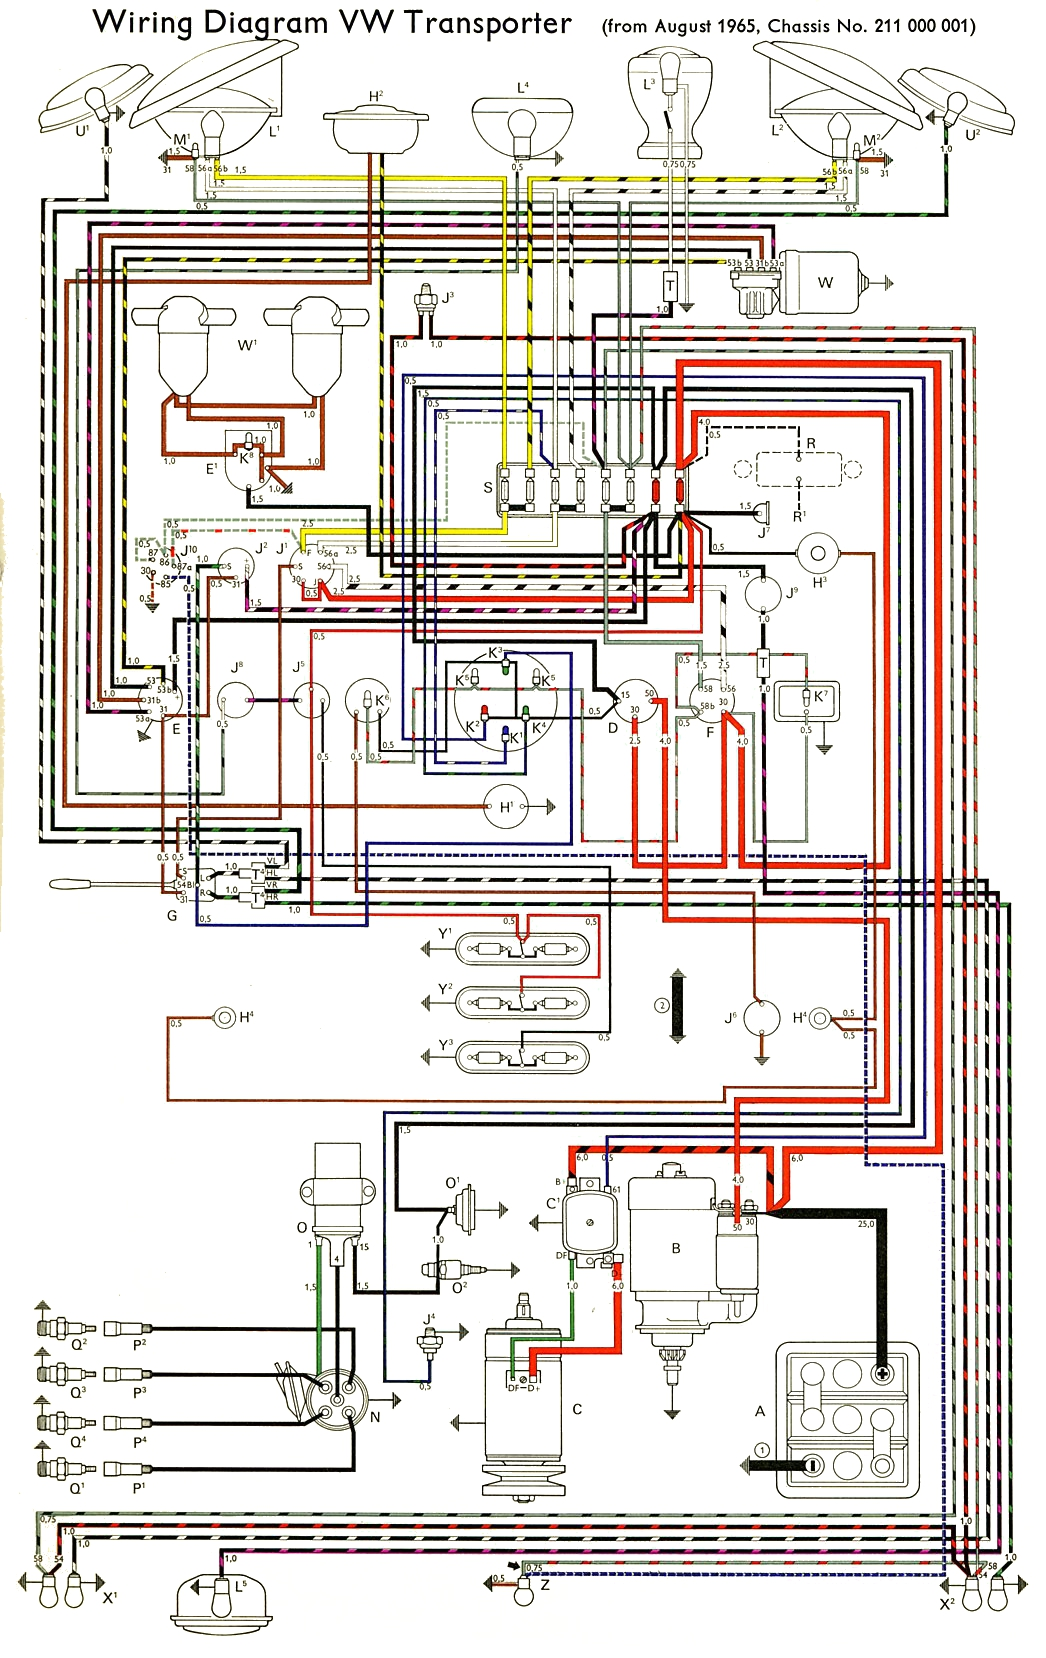 bus_66 electrical wiring diagrams beetle 1971 electrical wiring 1971 vw beetle wiring diagram at nearapp.co